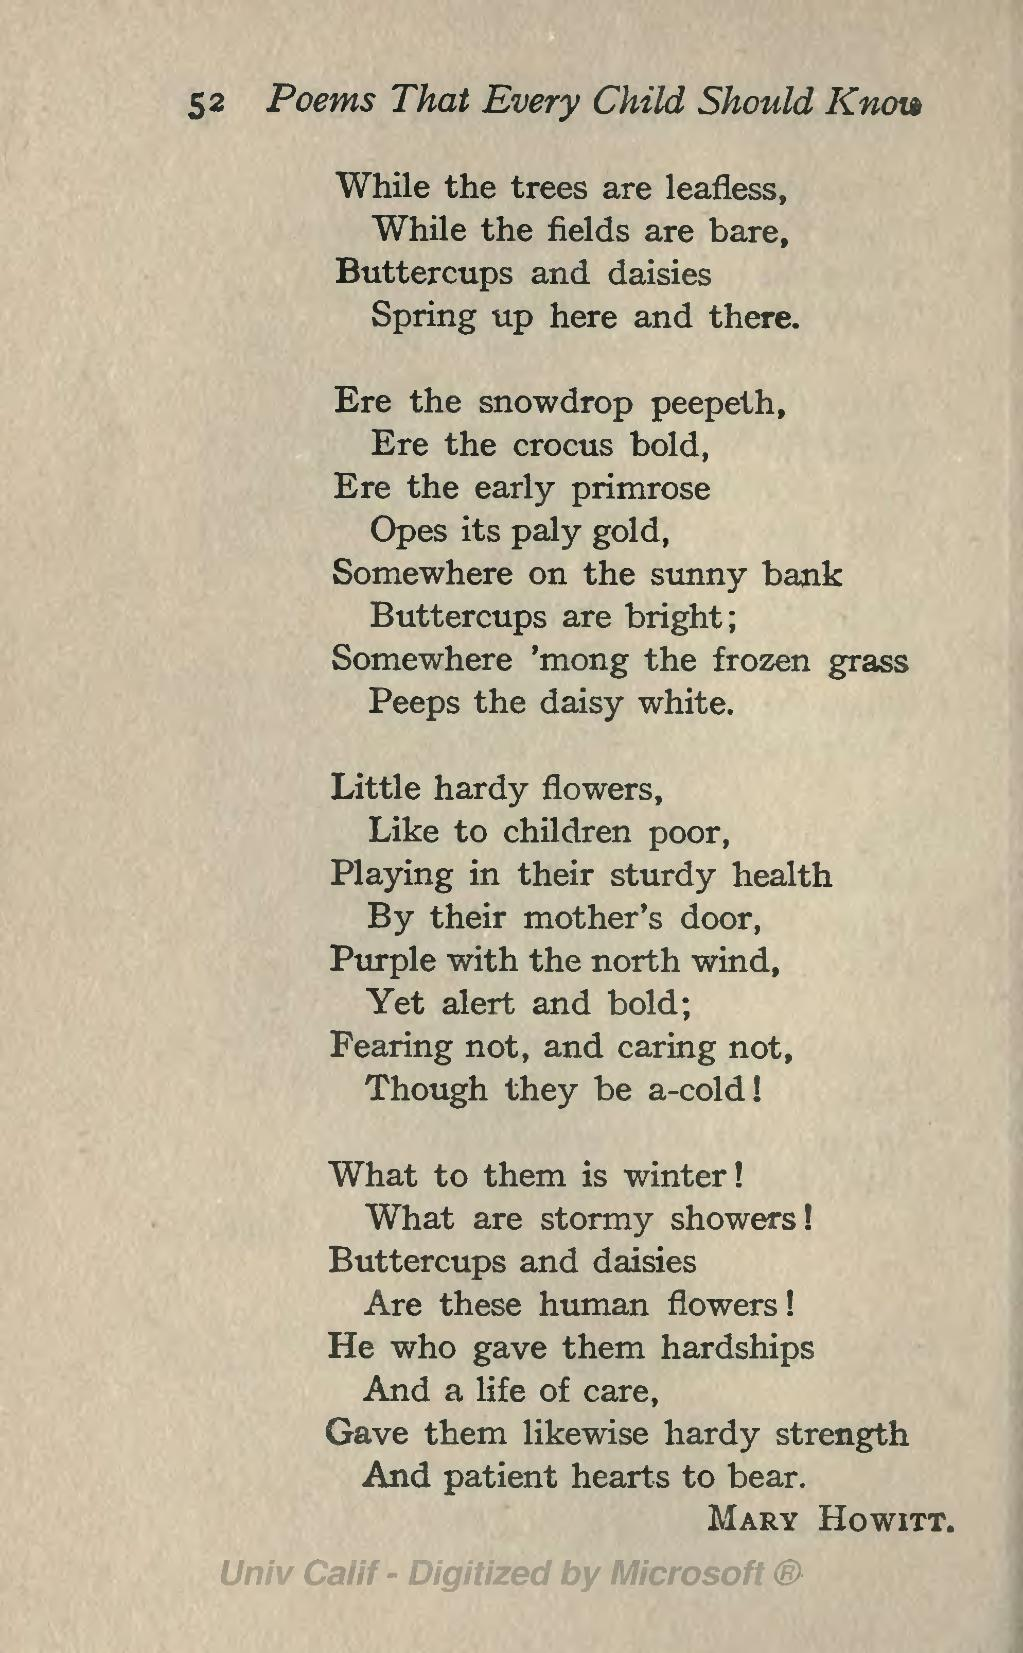 Pagepoems that every child should know ed burt 1904vu90 pagepoems that every child should know ed burt 1904vu90 wikisource the free online library izmirmasajfo